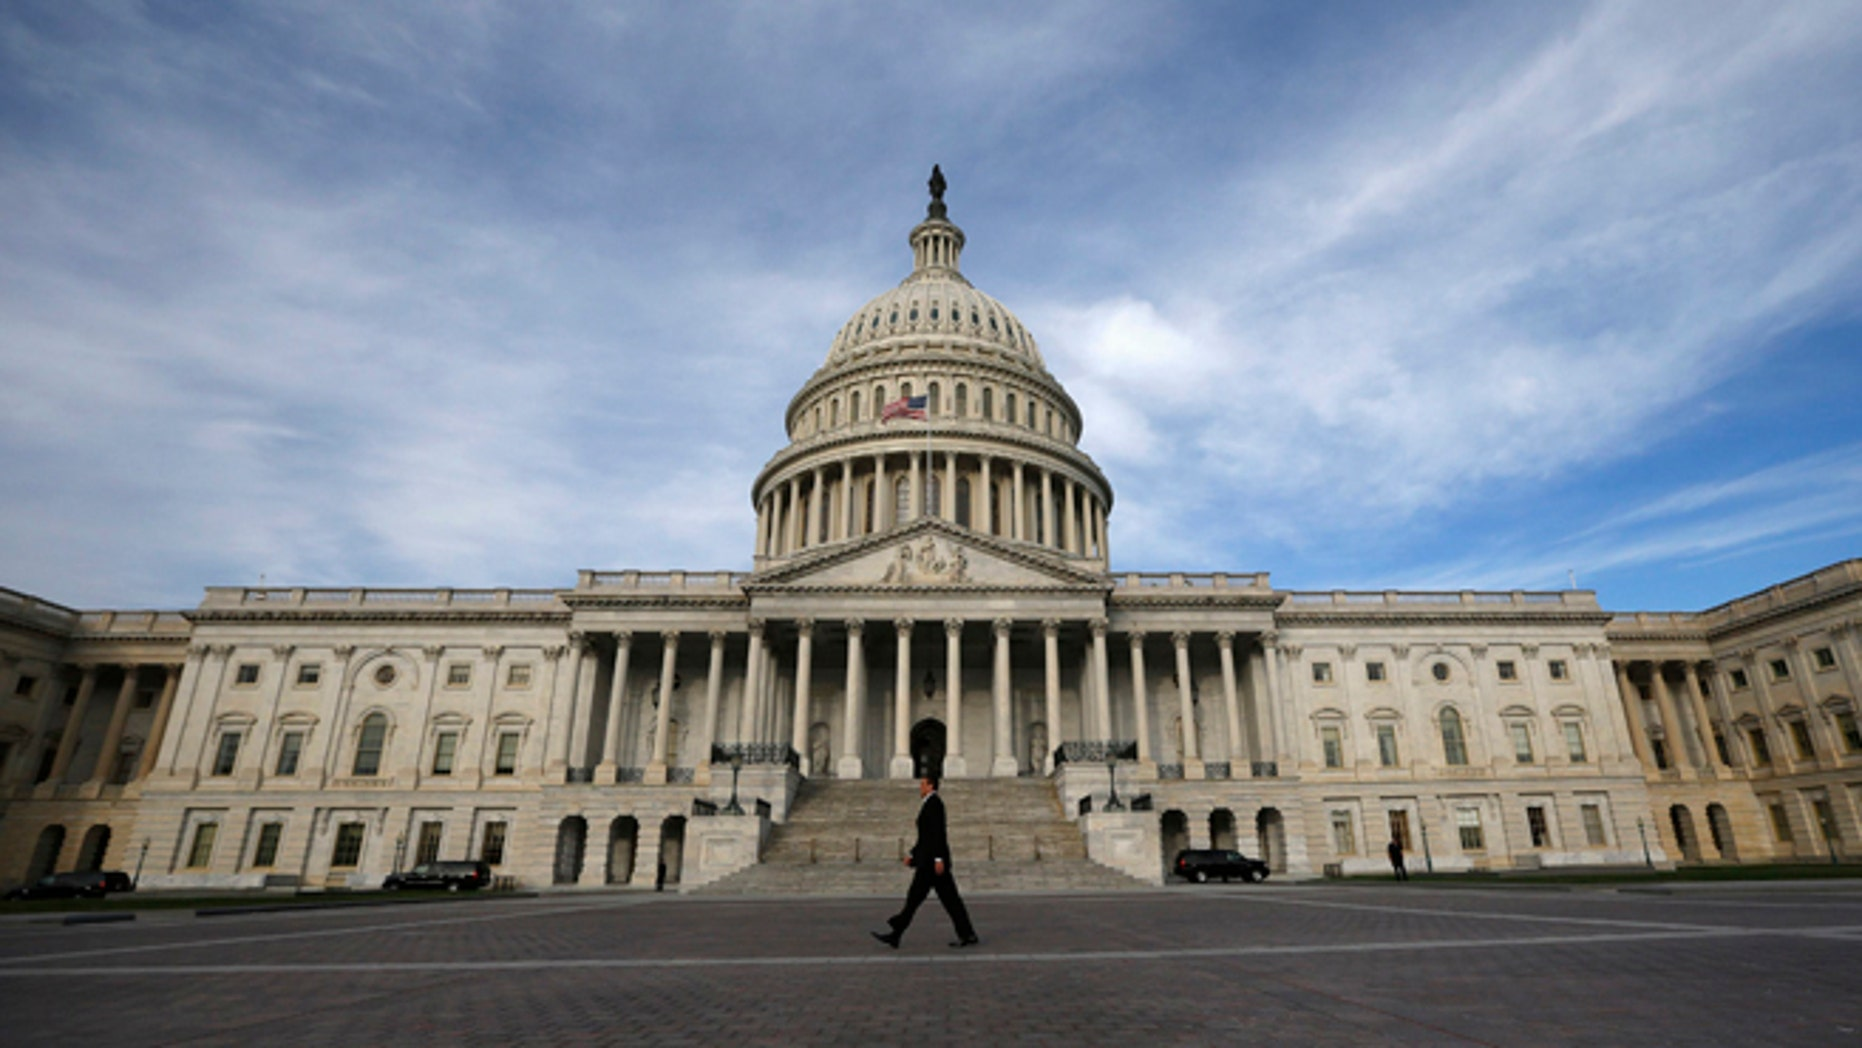 A lone worker passes by the U.S. Capitol building in Washington, October 8, 2013.